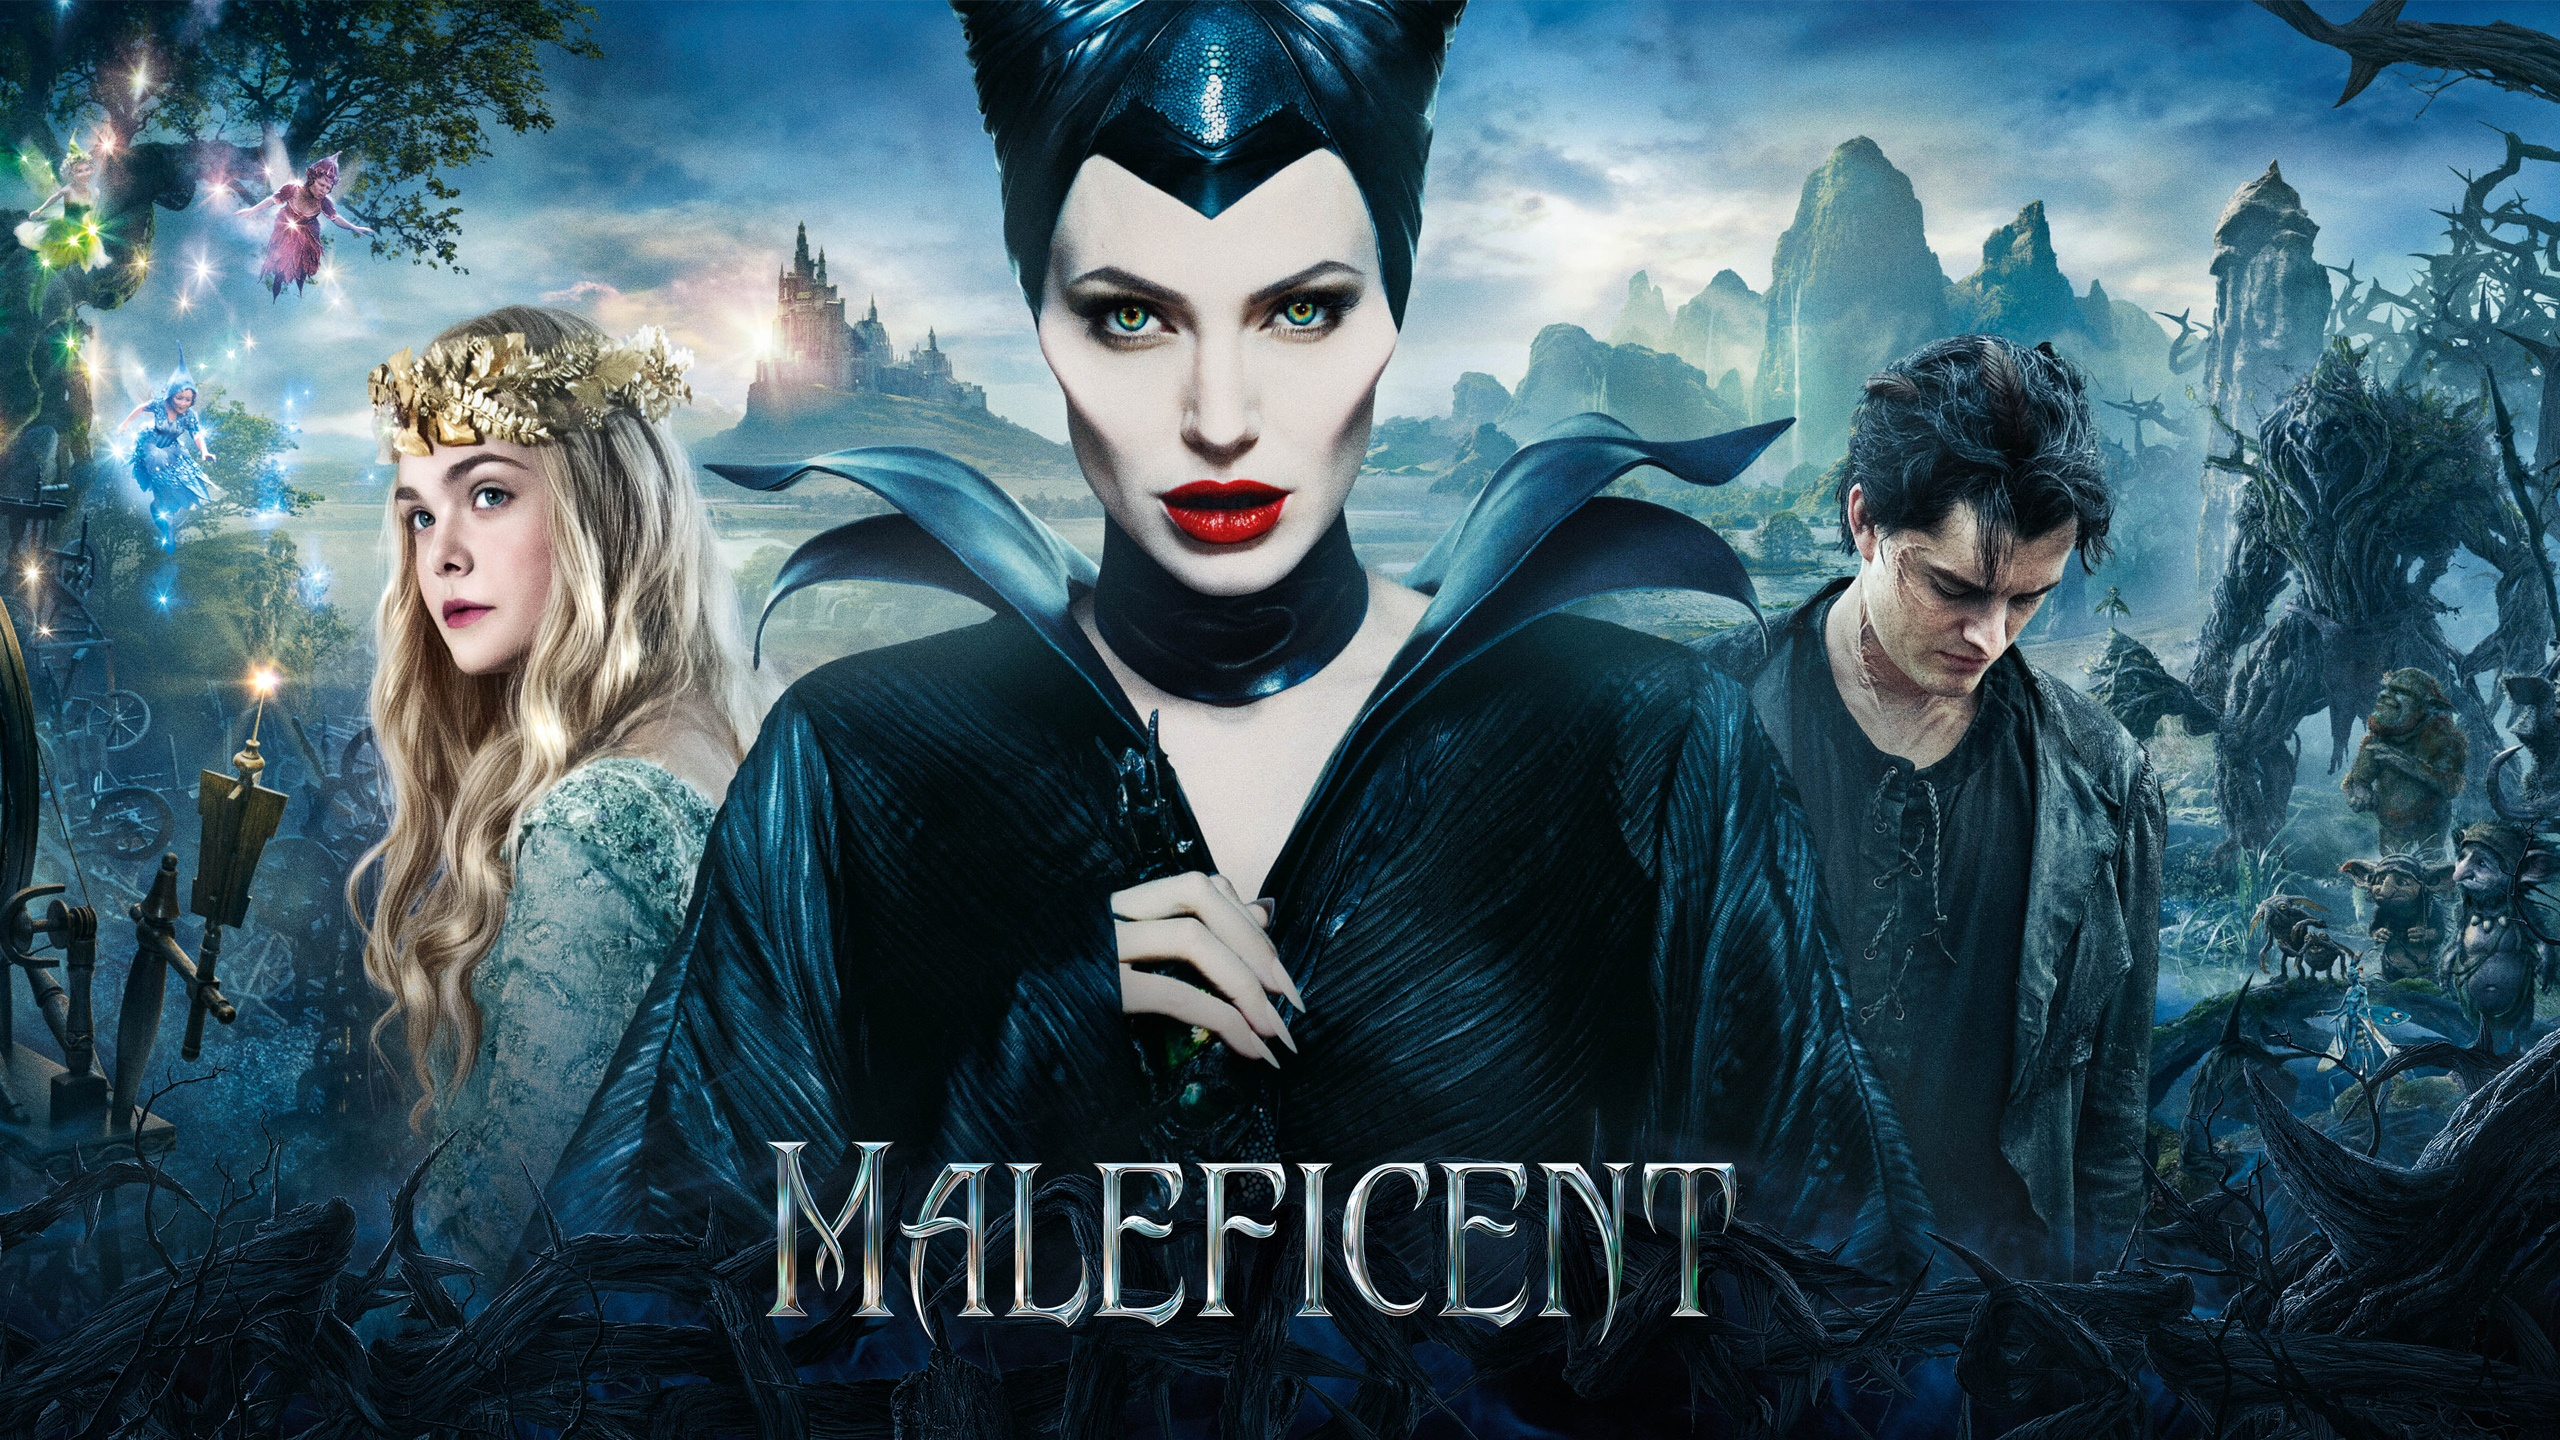 maleficent_2014_movie-2560x1440